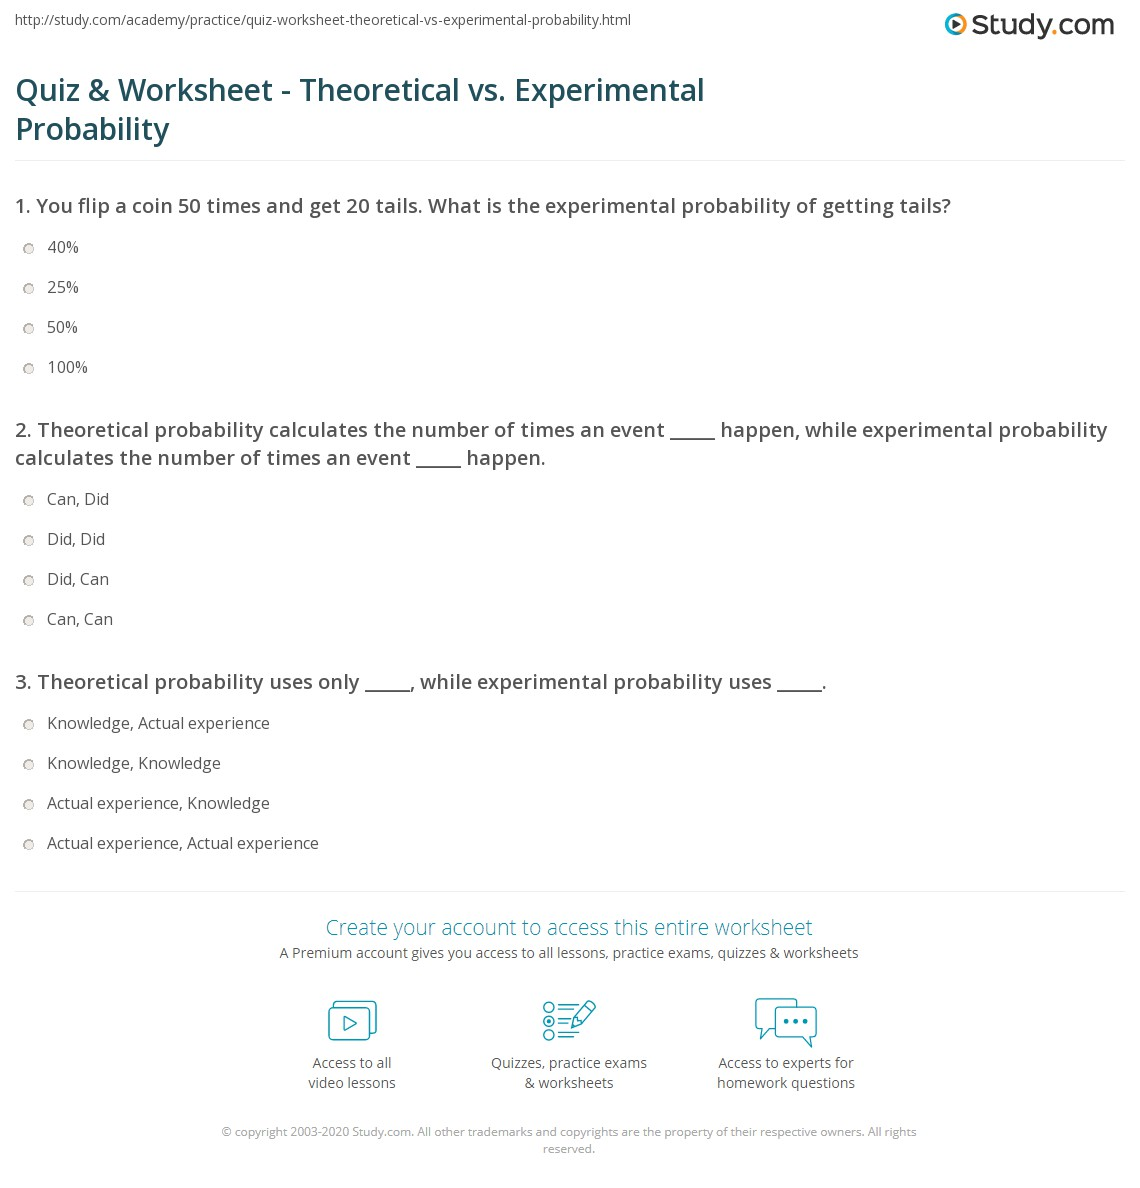 What Is Theoretical Probability Math Probability Math Grade likewise  in addition  additionally Theoretical Probability Worksheet Experimental  pound Grade in addition  also theoretical probability worksheets – jhltransports additionally Experimental and Theoretical Probability  solutions  ex les also  besides probability worksheets grade 5 moreover worksheet  Theoretical And Experimental Probability Worksheet likewise theoretical and experimental probability worksheet   Siteraven further theoretical and experimental probability worksheet   Siteraven in addition Probability Worksheets With Answers Activities Experimental in addition worksheet Experimental Probability Worksheets worksheet works additionally Experimental Probability Worksheet 29 Best theoretical Probability additionally √ Worksheet Works Theoretical Probability. on experimental and theoretical probability worksheet